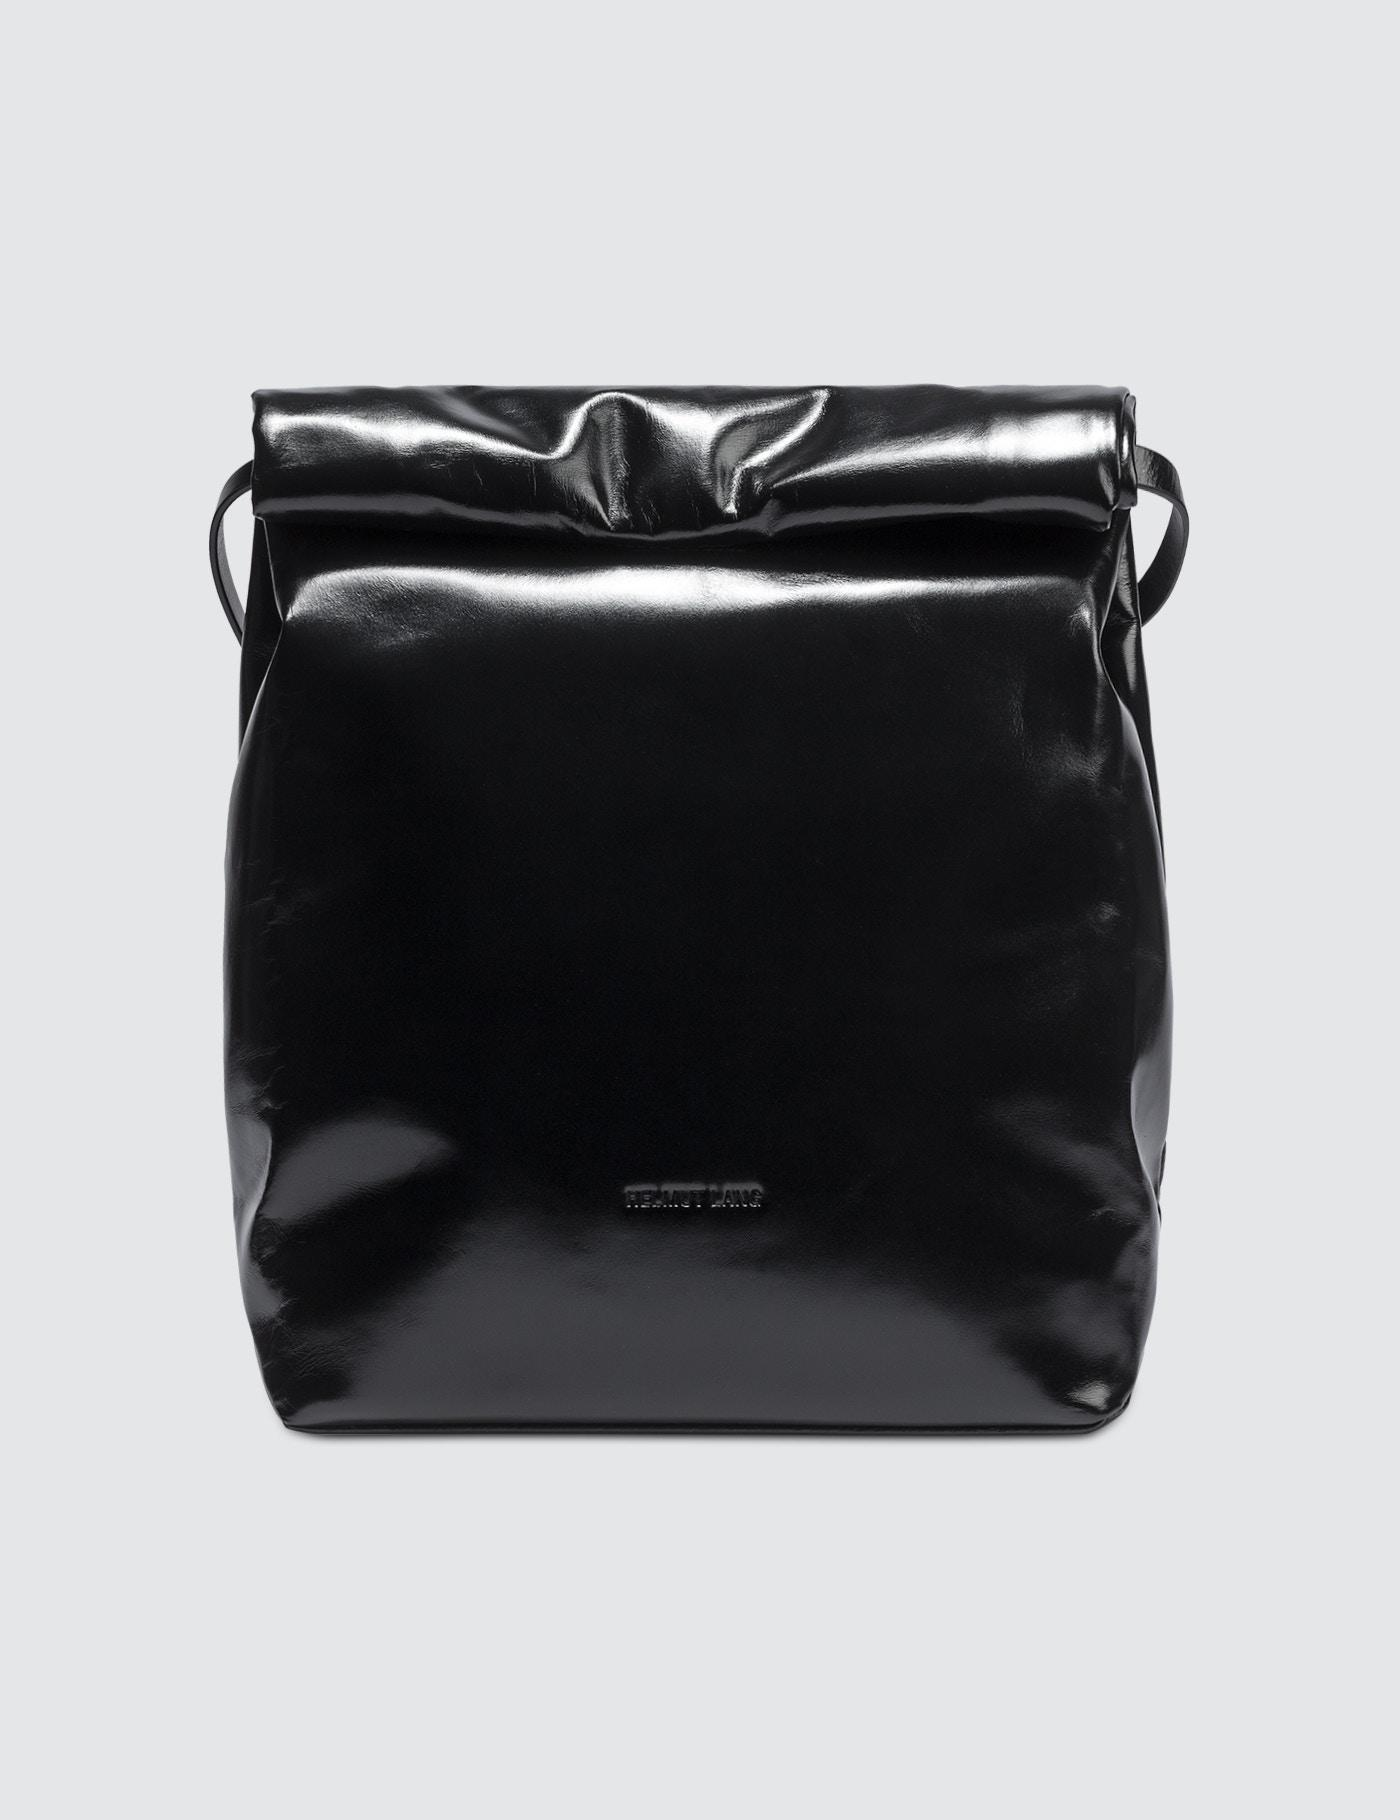 Wide Range Of Cheap Price foldover crossbody bag - Black Helmut Lang Free Shipping Online Y5lzO6GlJl